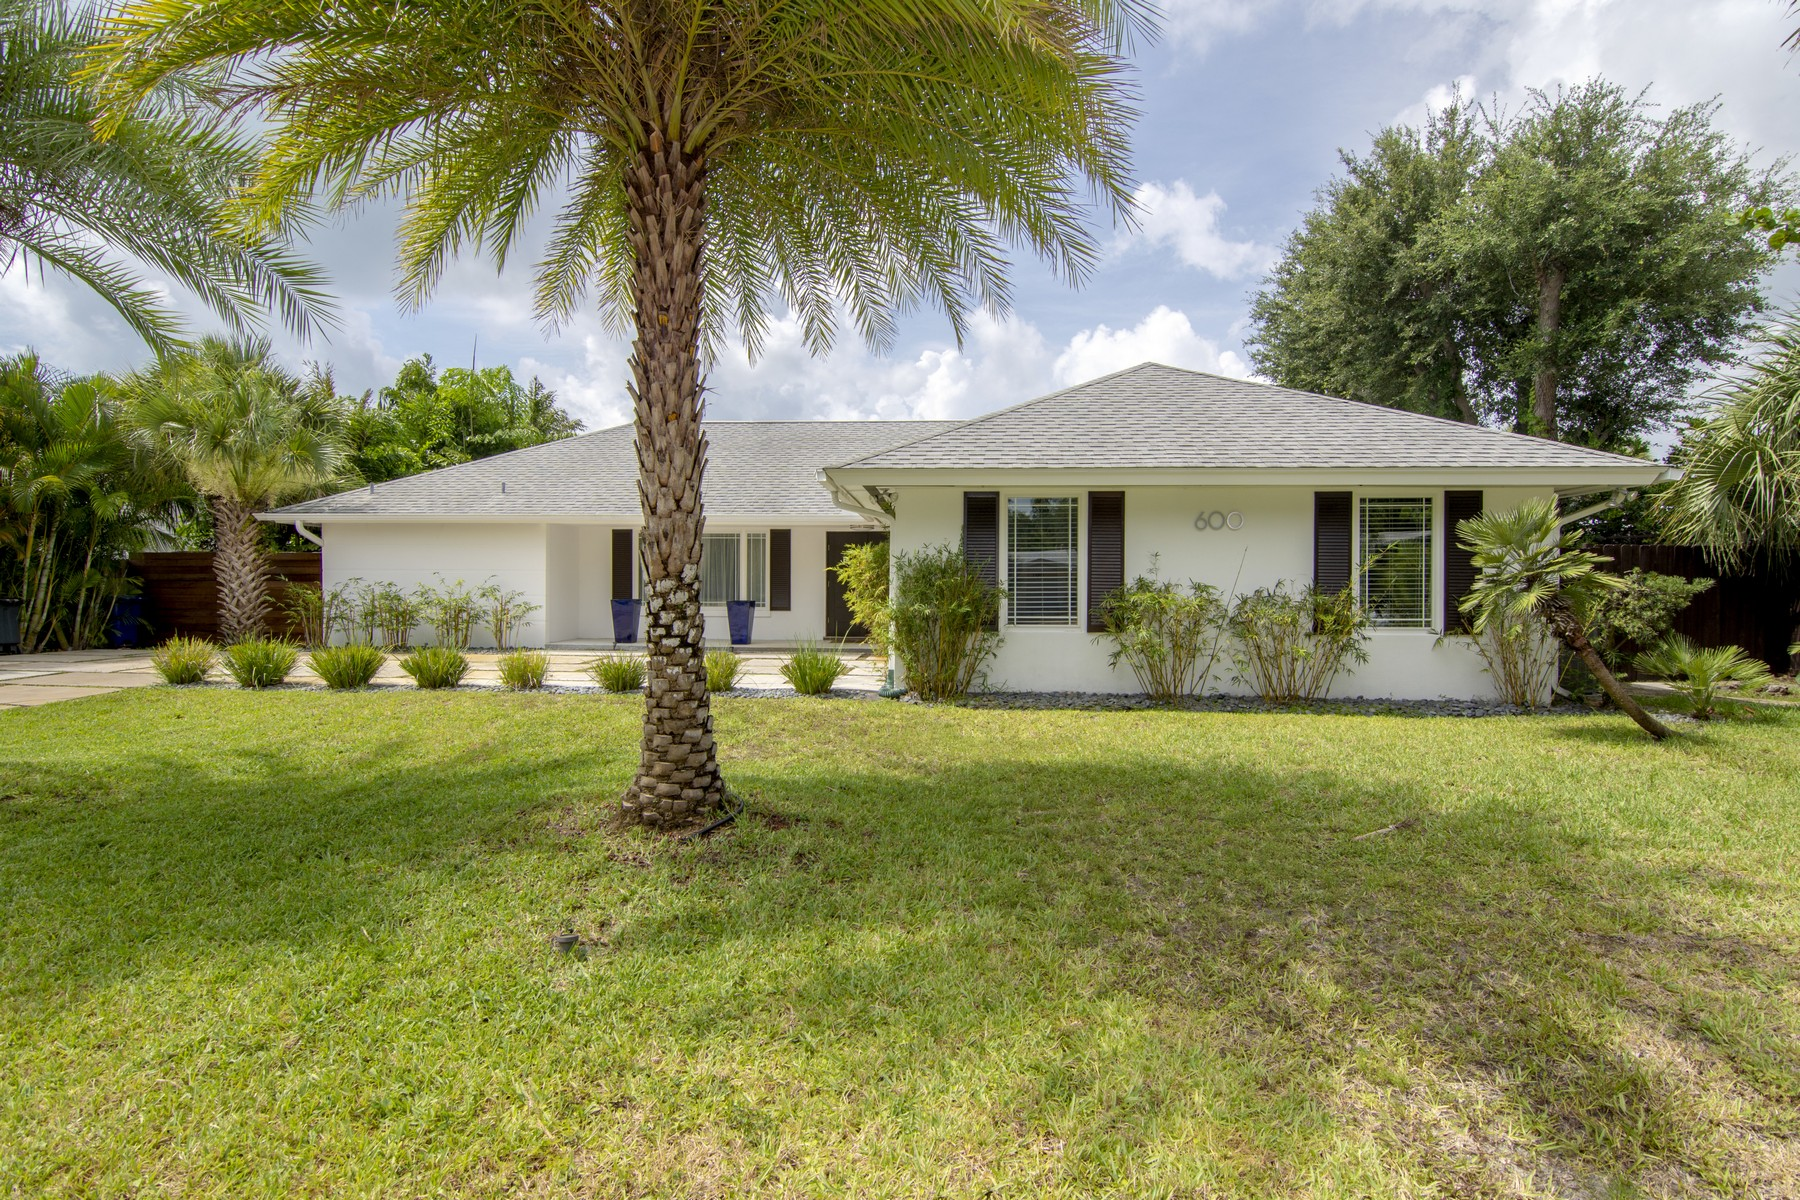 Additional photo for property listing at Beautifully Renovated Home with New Swimming Pool! 600 Honeysuckle Lane Vero Beach, Florida 32963 United States